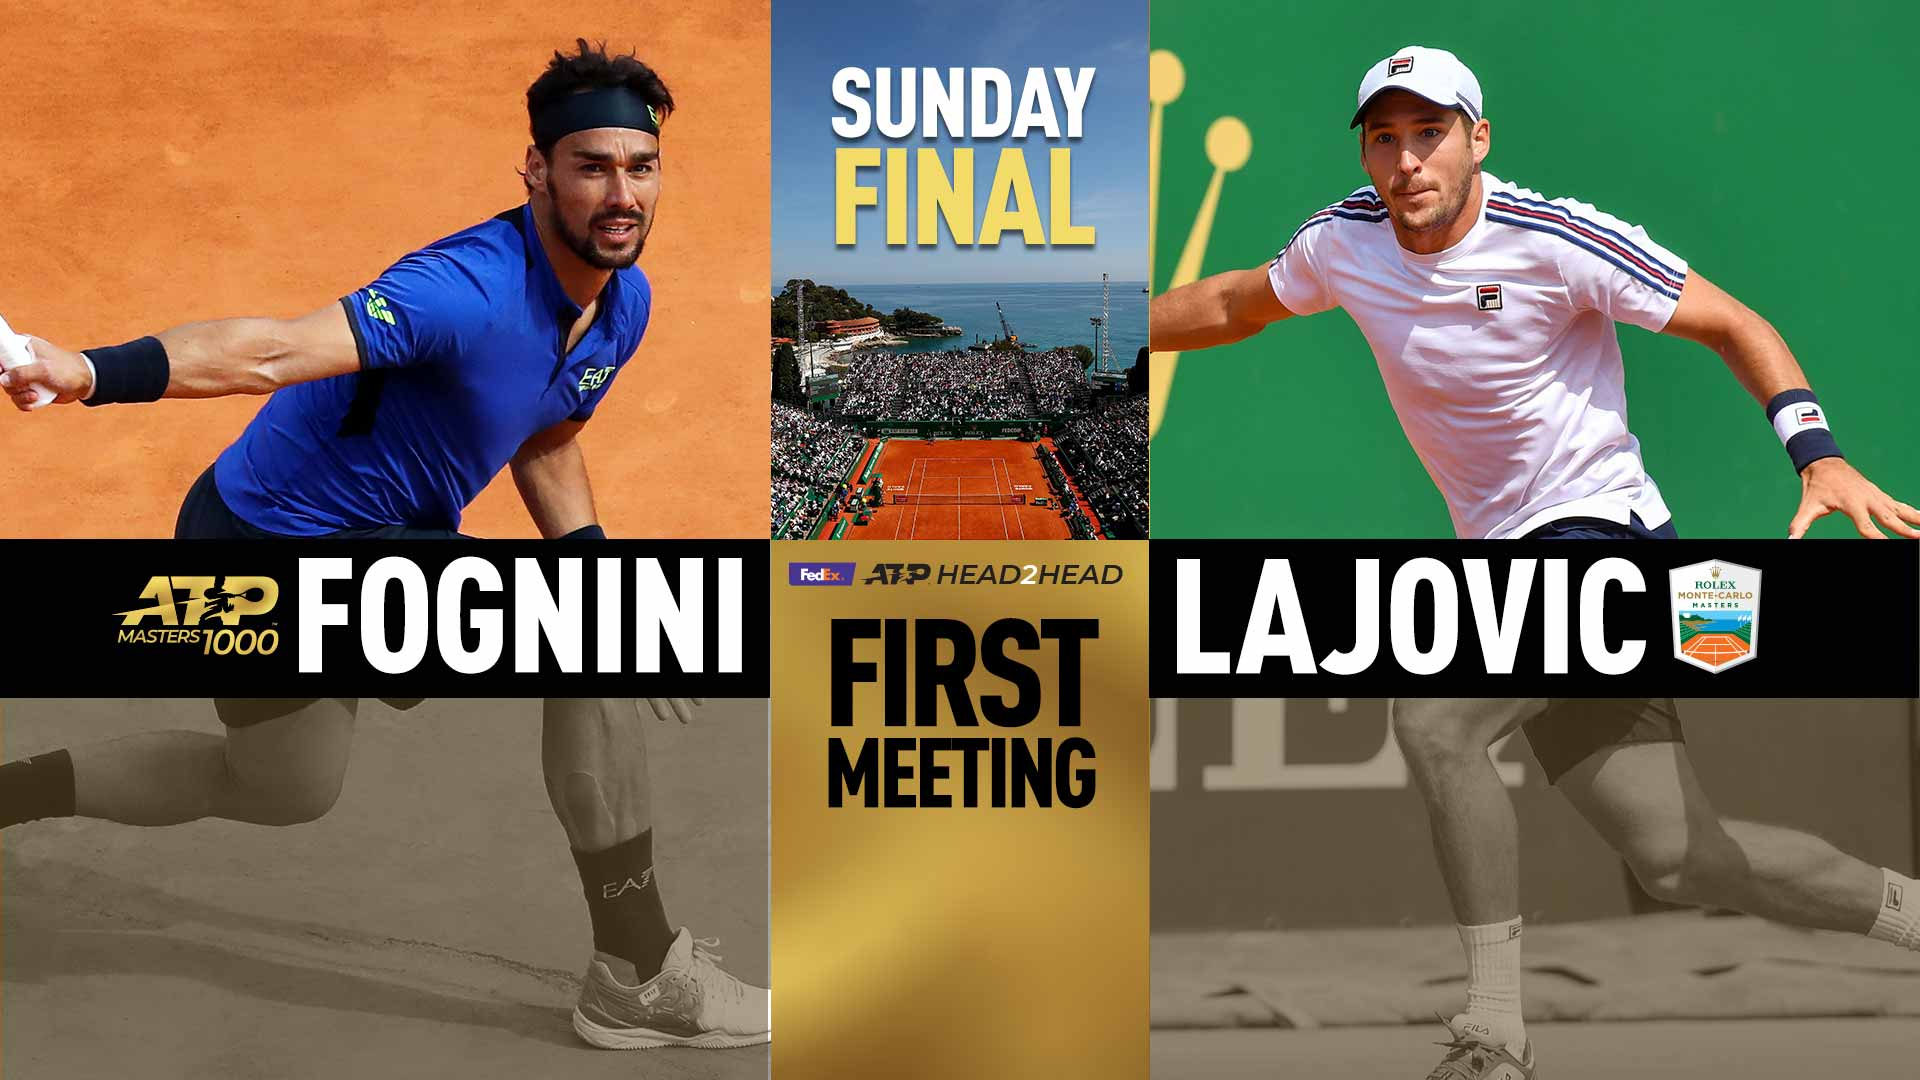 Fognini plays Lajovic in the 2019 Rolex Monte-Carlo Masters